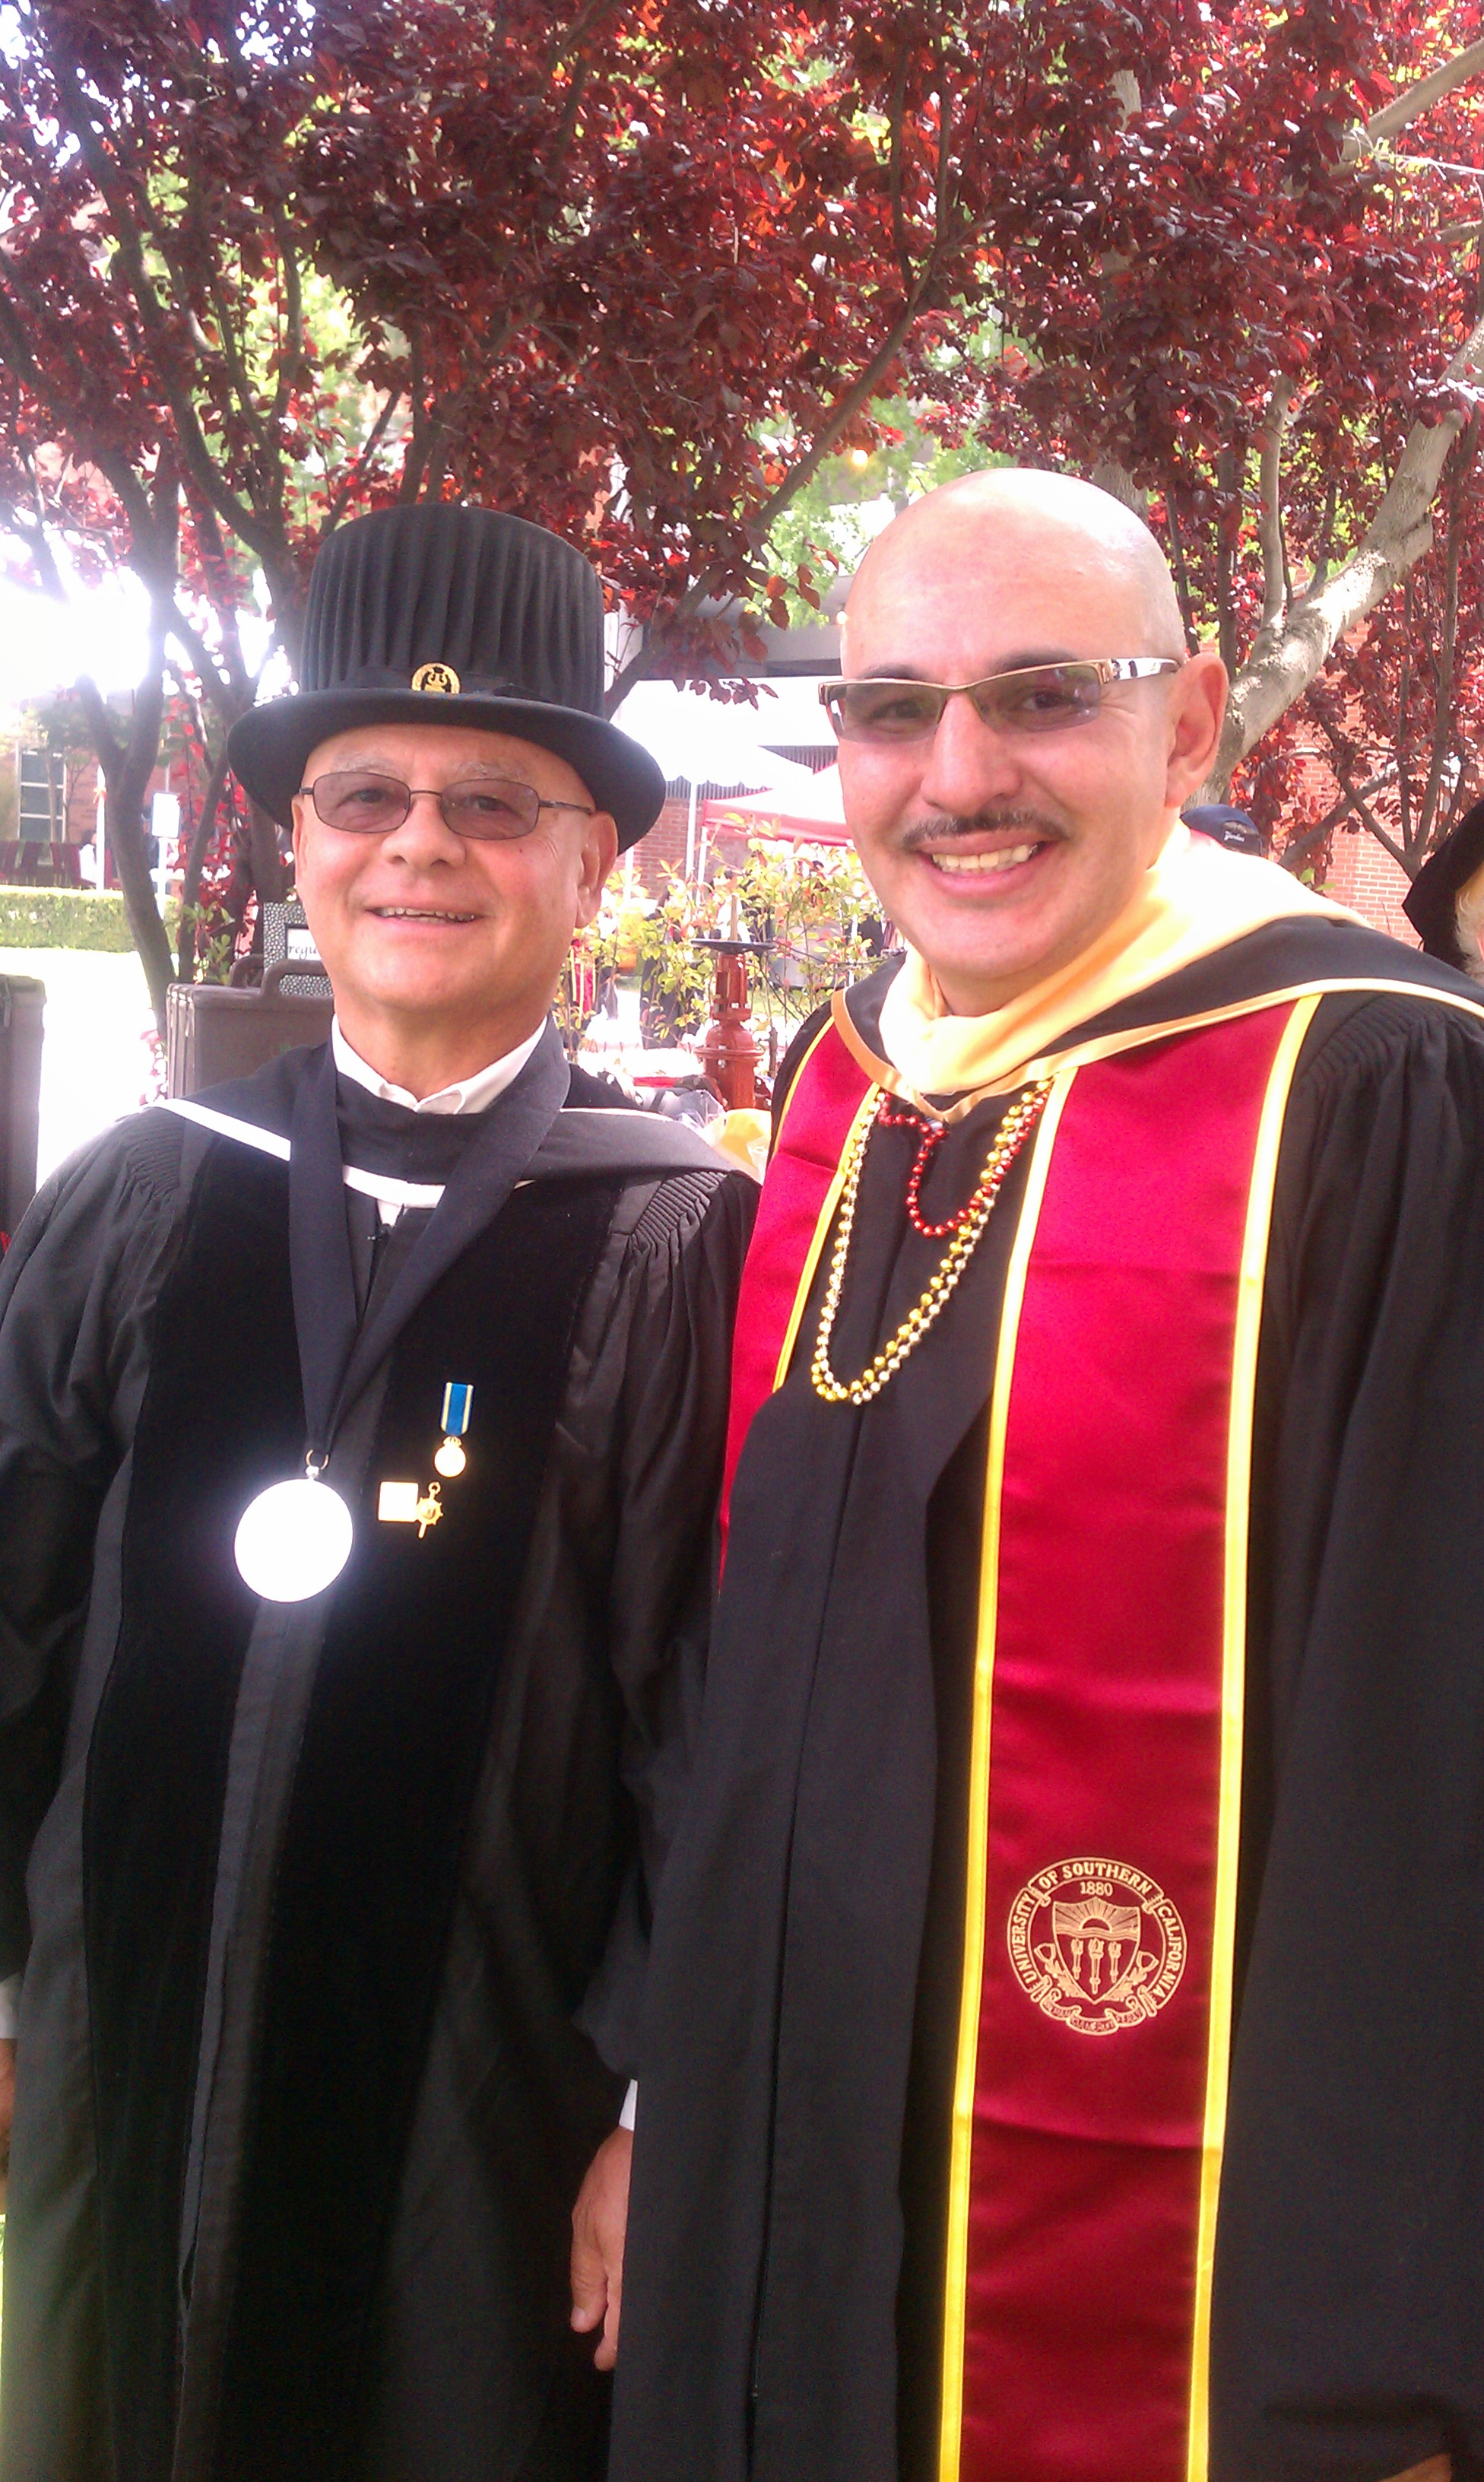 Ray Zacarias on right in gradudation cap and gown from USC